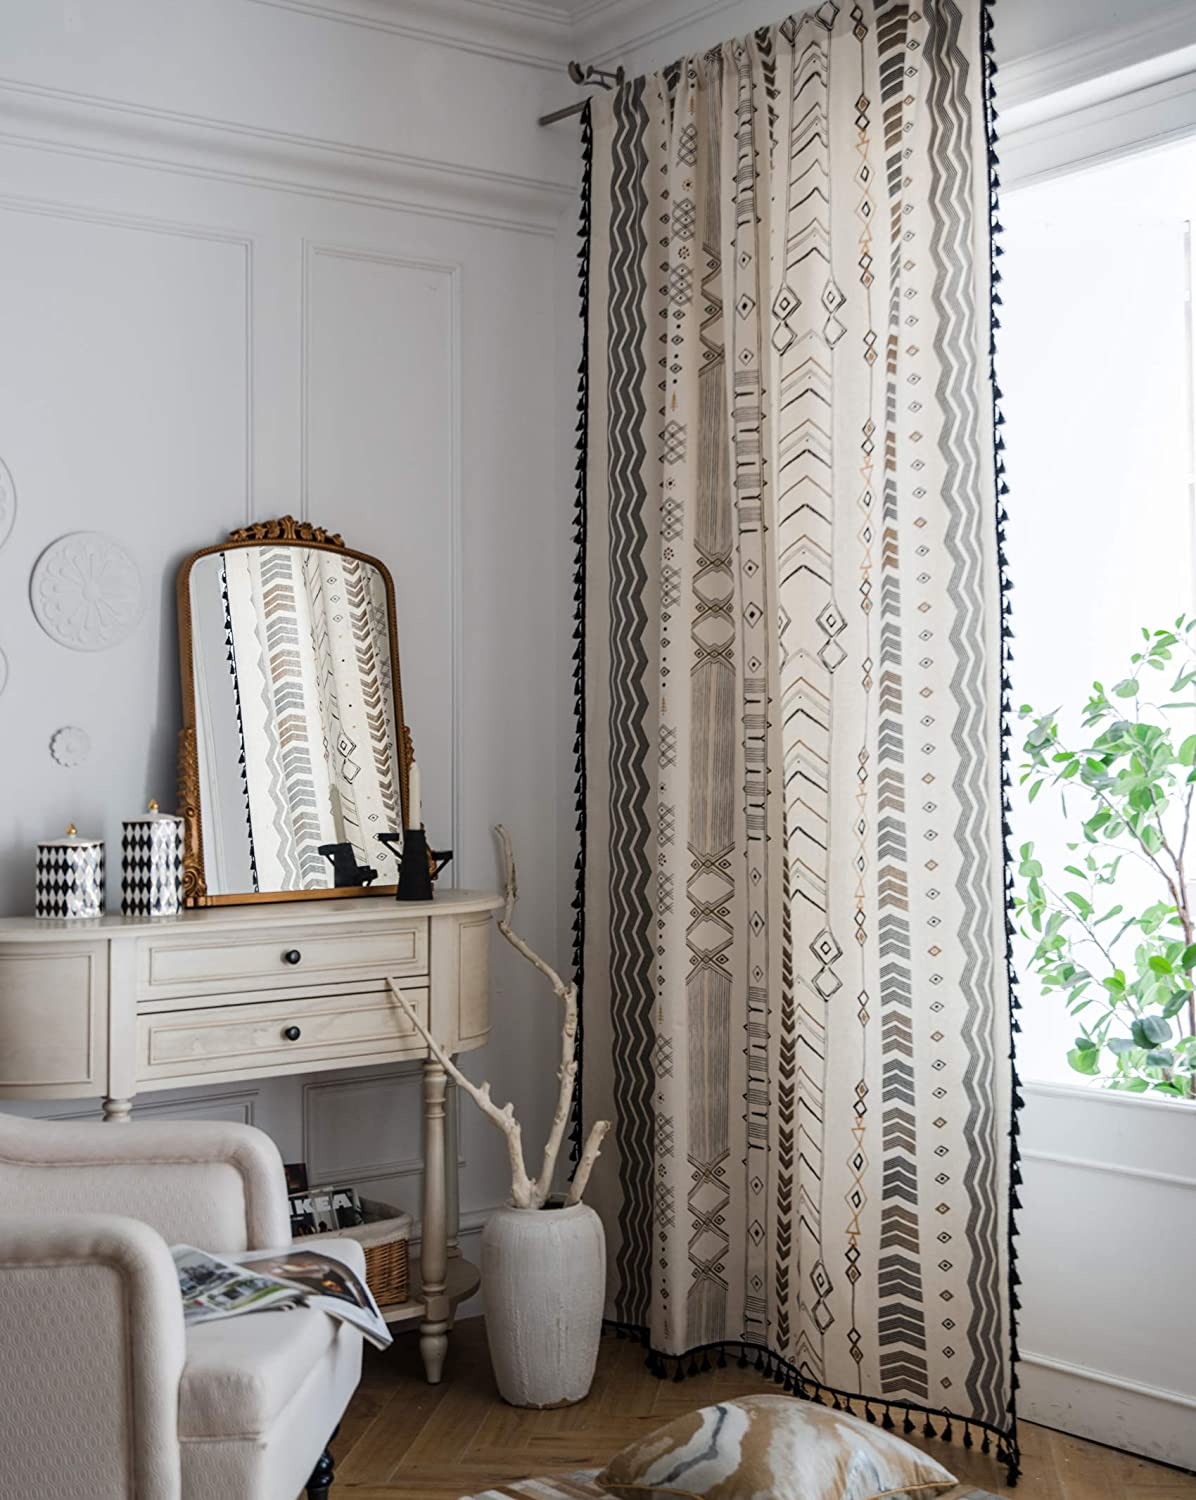 Hughapy Boho Curtains for Bedroom Bohemian Geometric Tassel Curtains Rod Pocket Cotton Linen Farmhouse Country Style Room Darkening Curtain Panel for Living Room, 1 Panel (59W x 87L, Arrow)